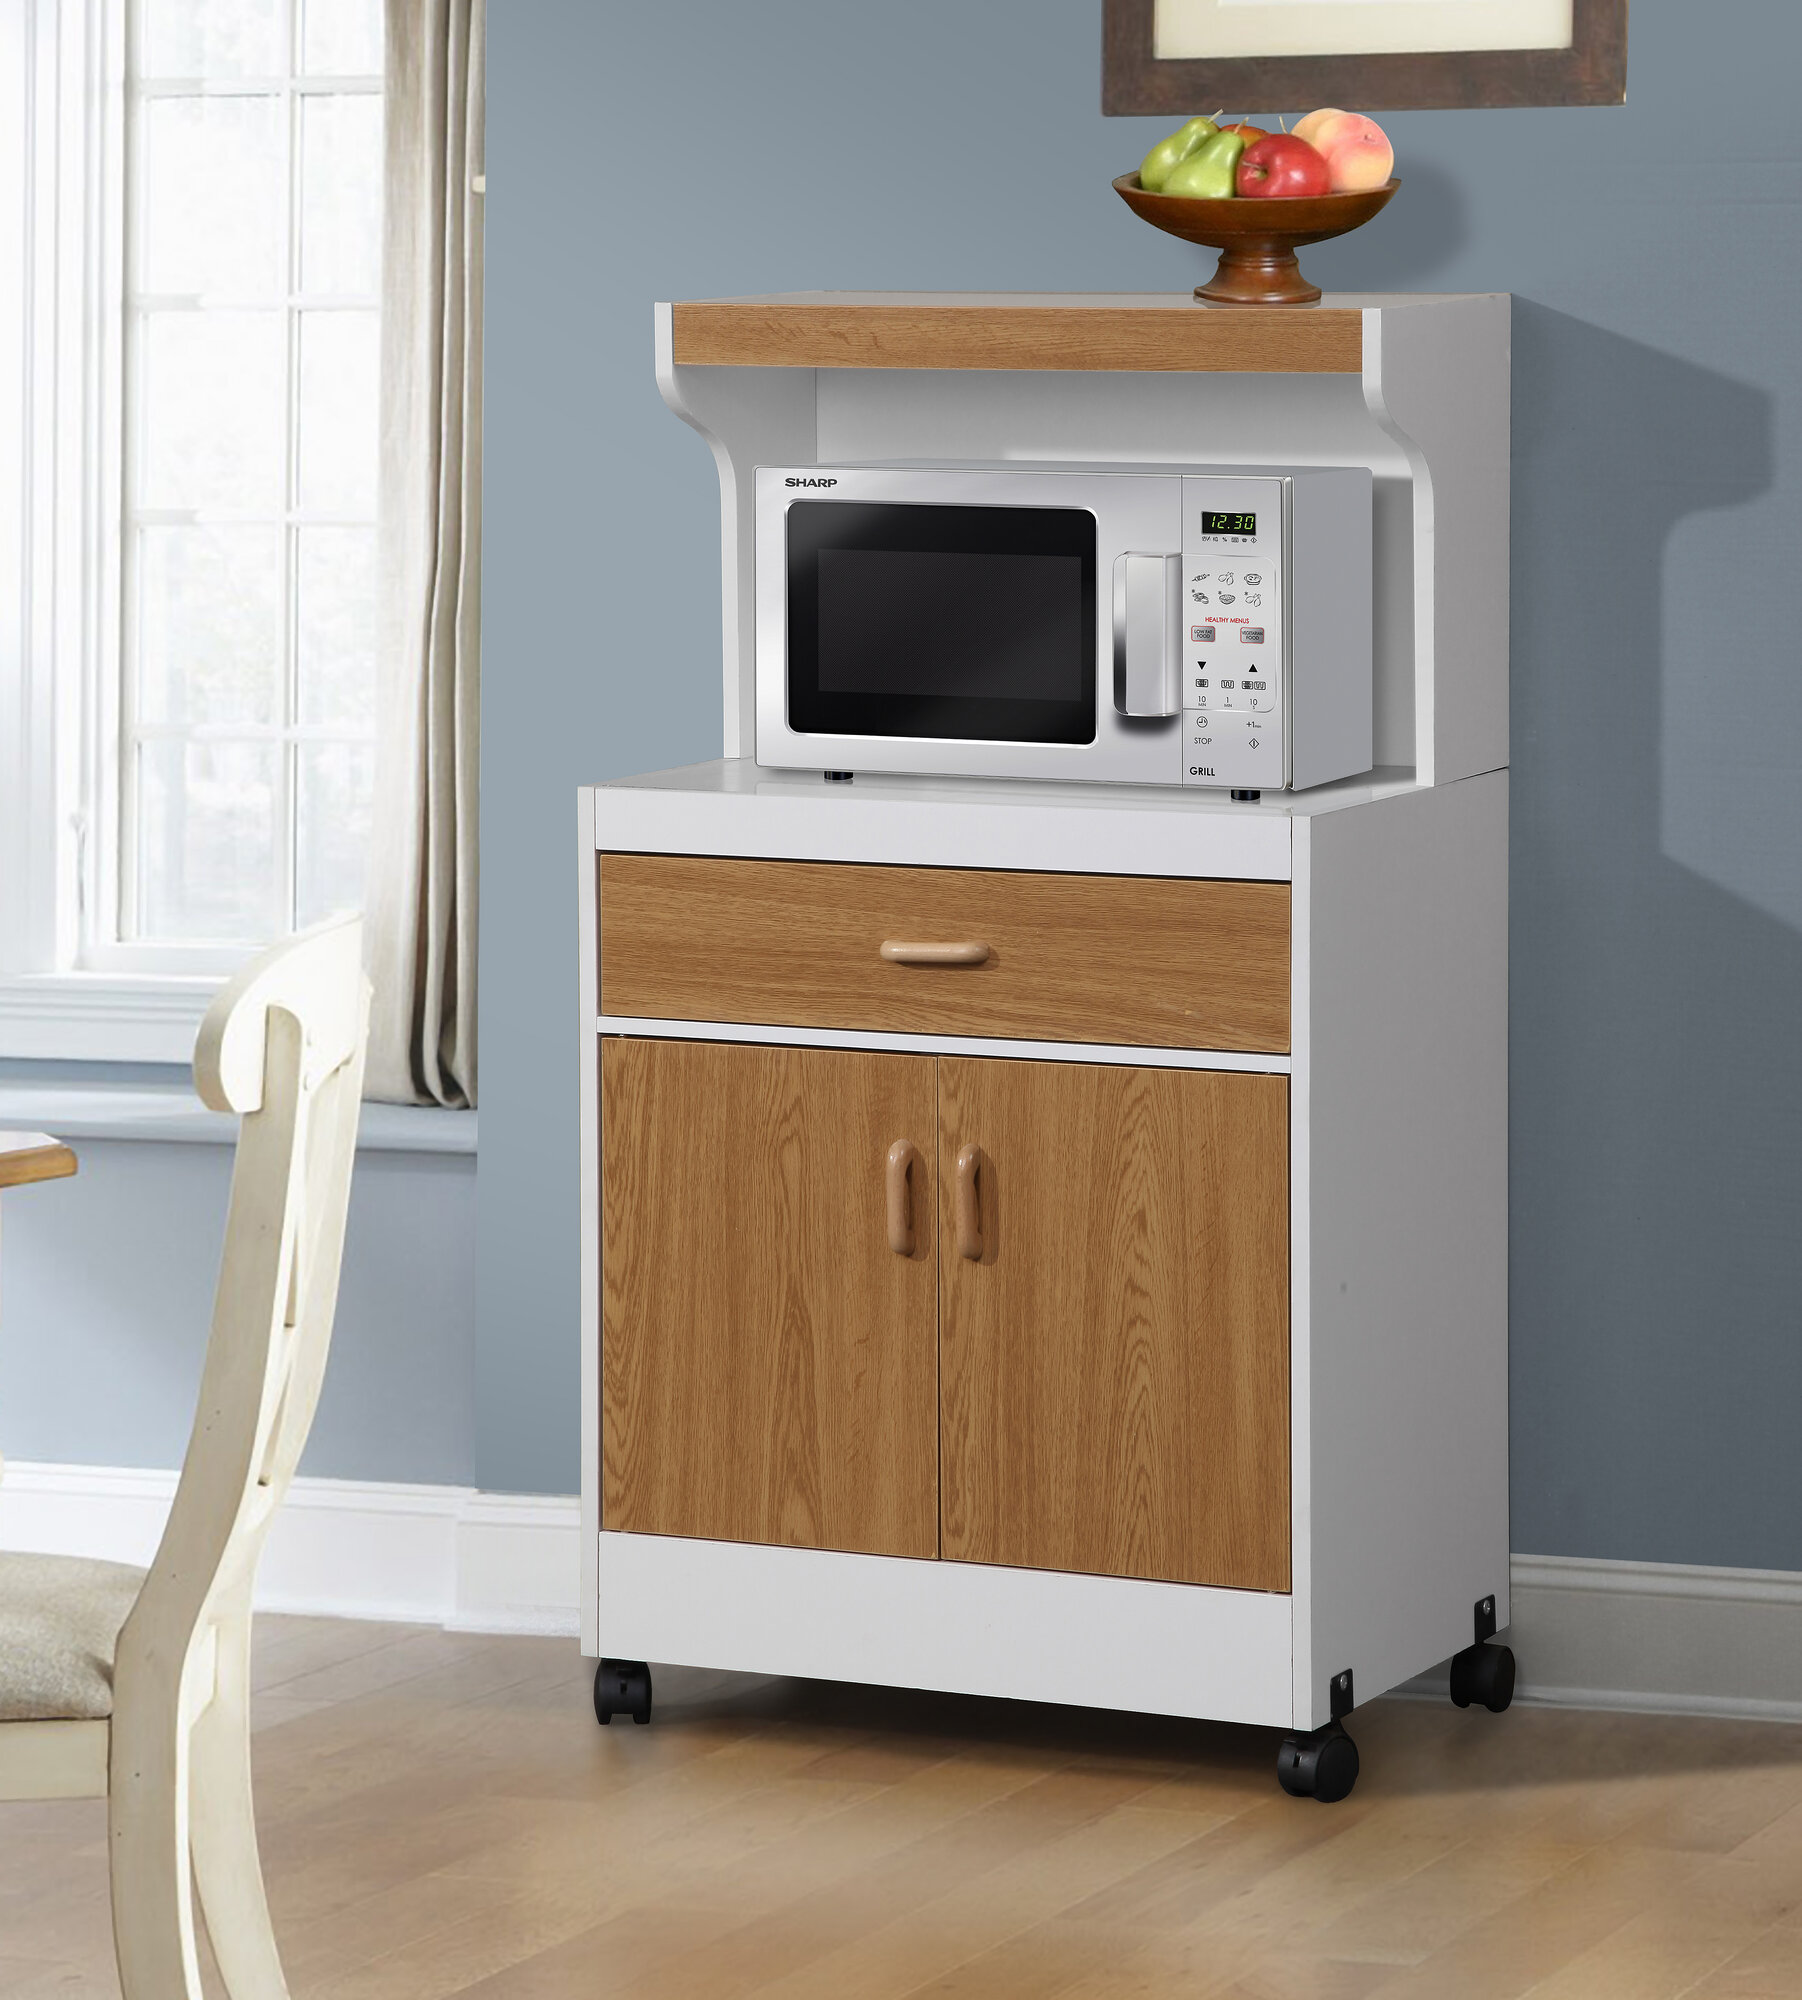 Details about Hazelwood Home Microwave Cart